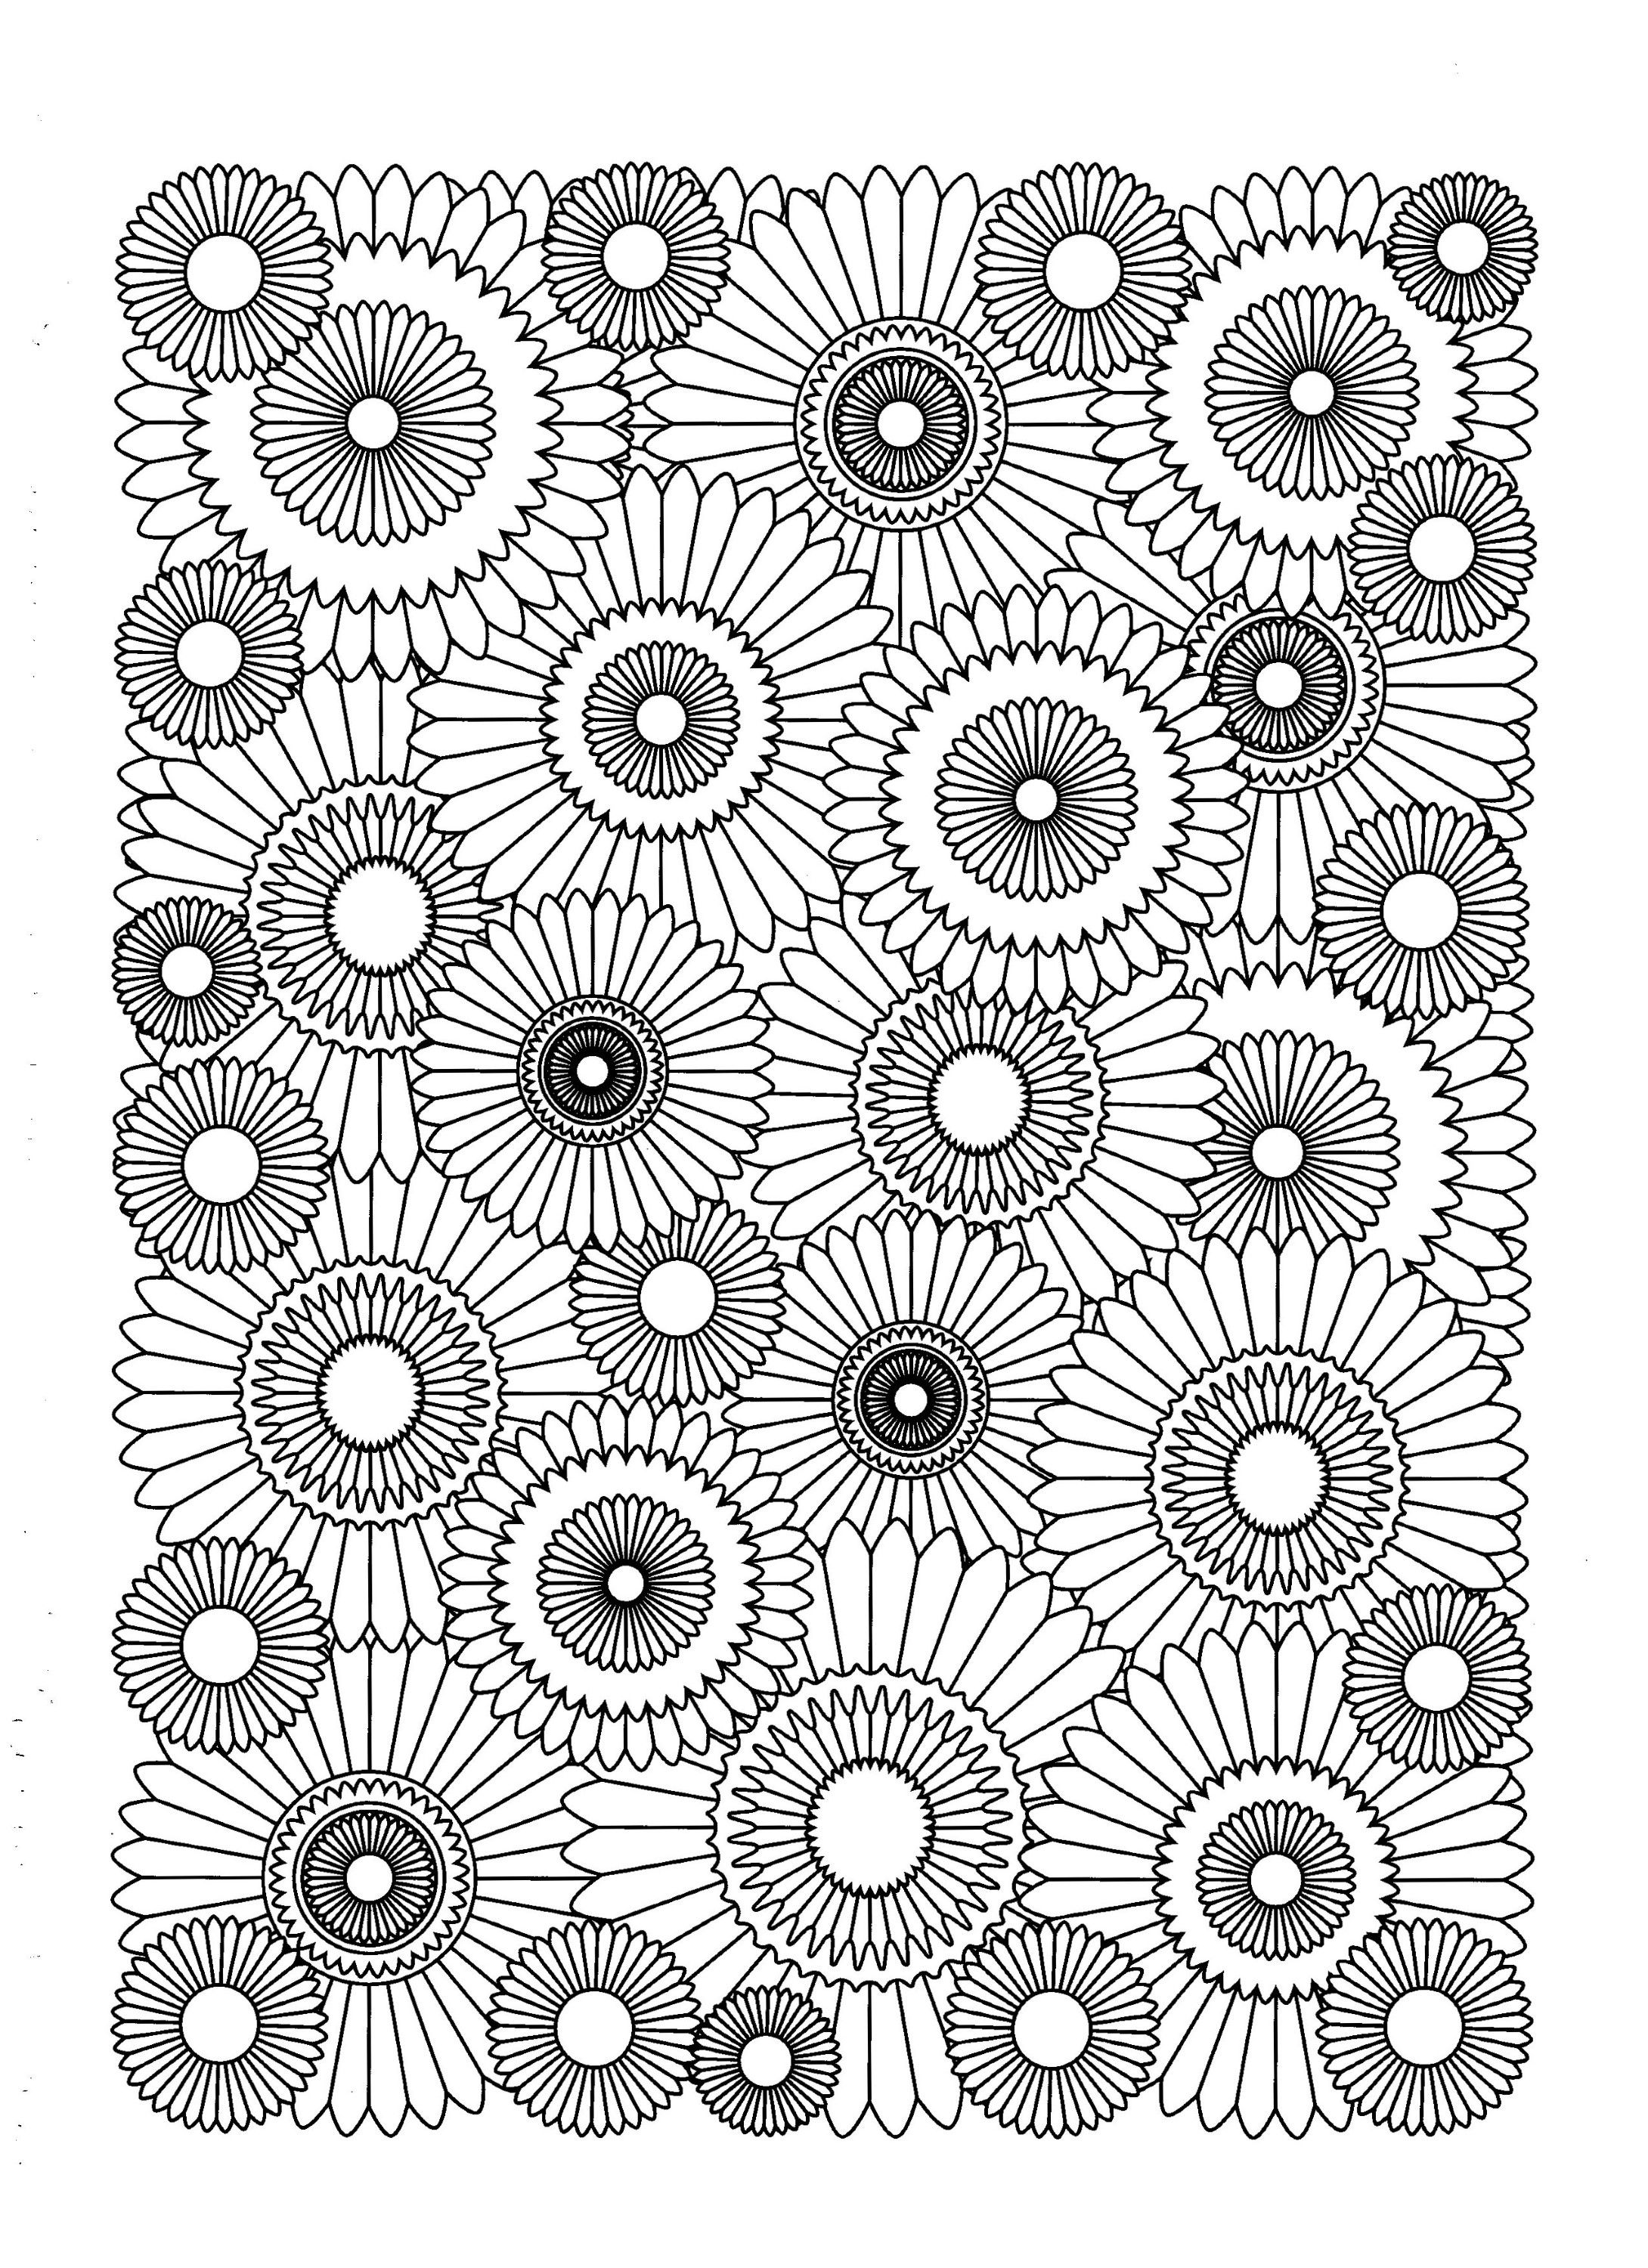 free coloring page coloringadultsunflower.  coloriage